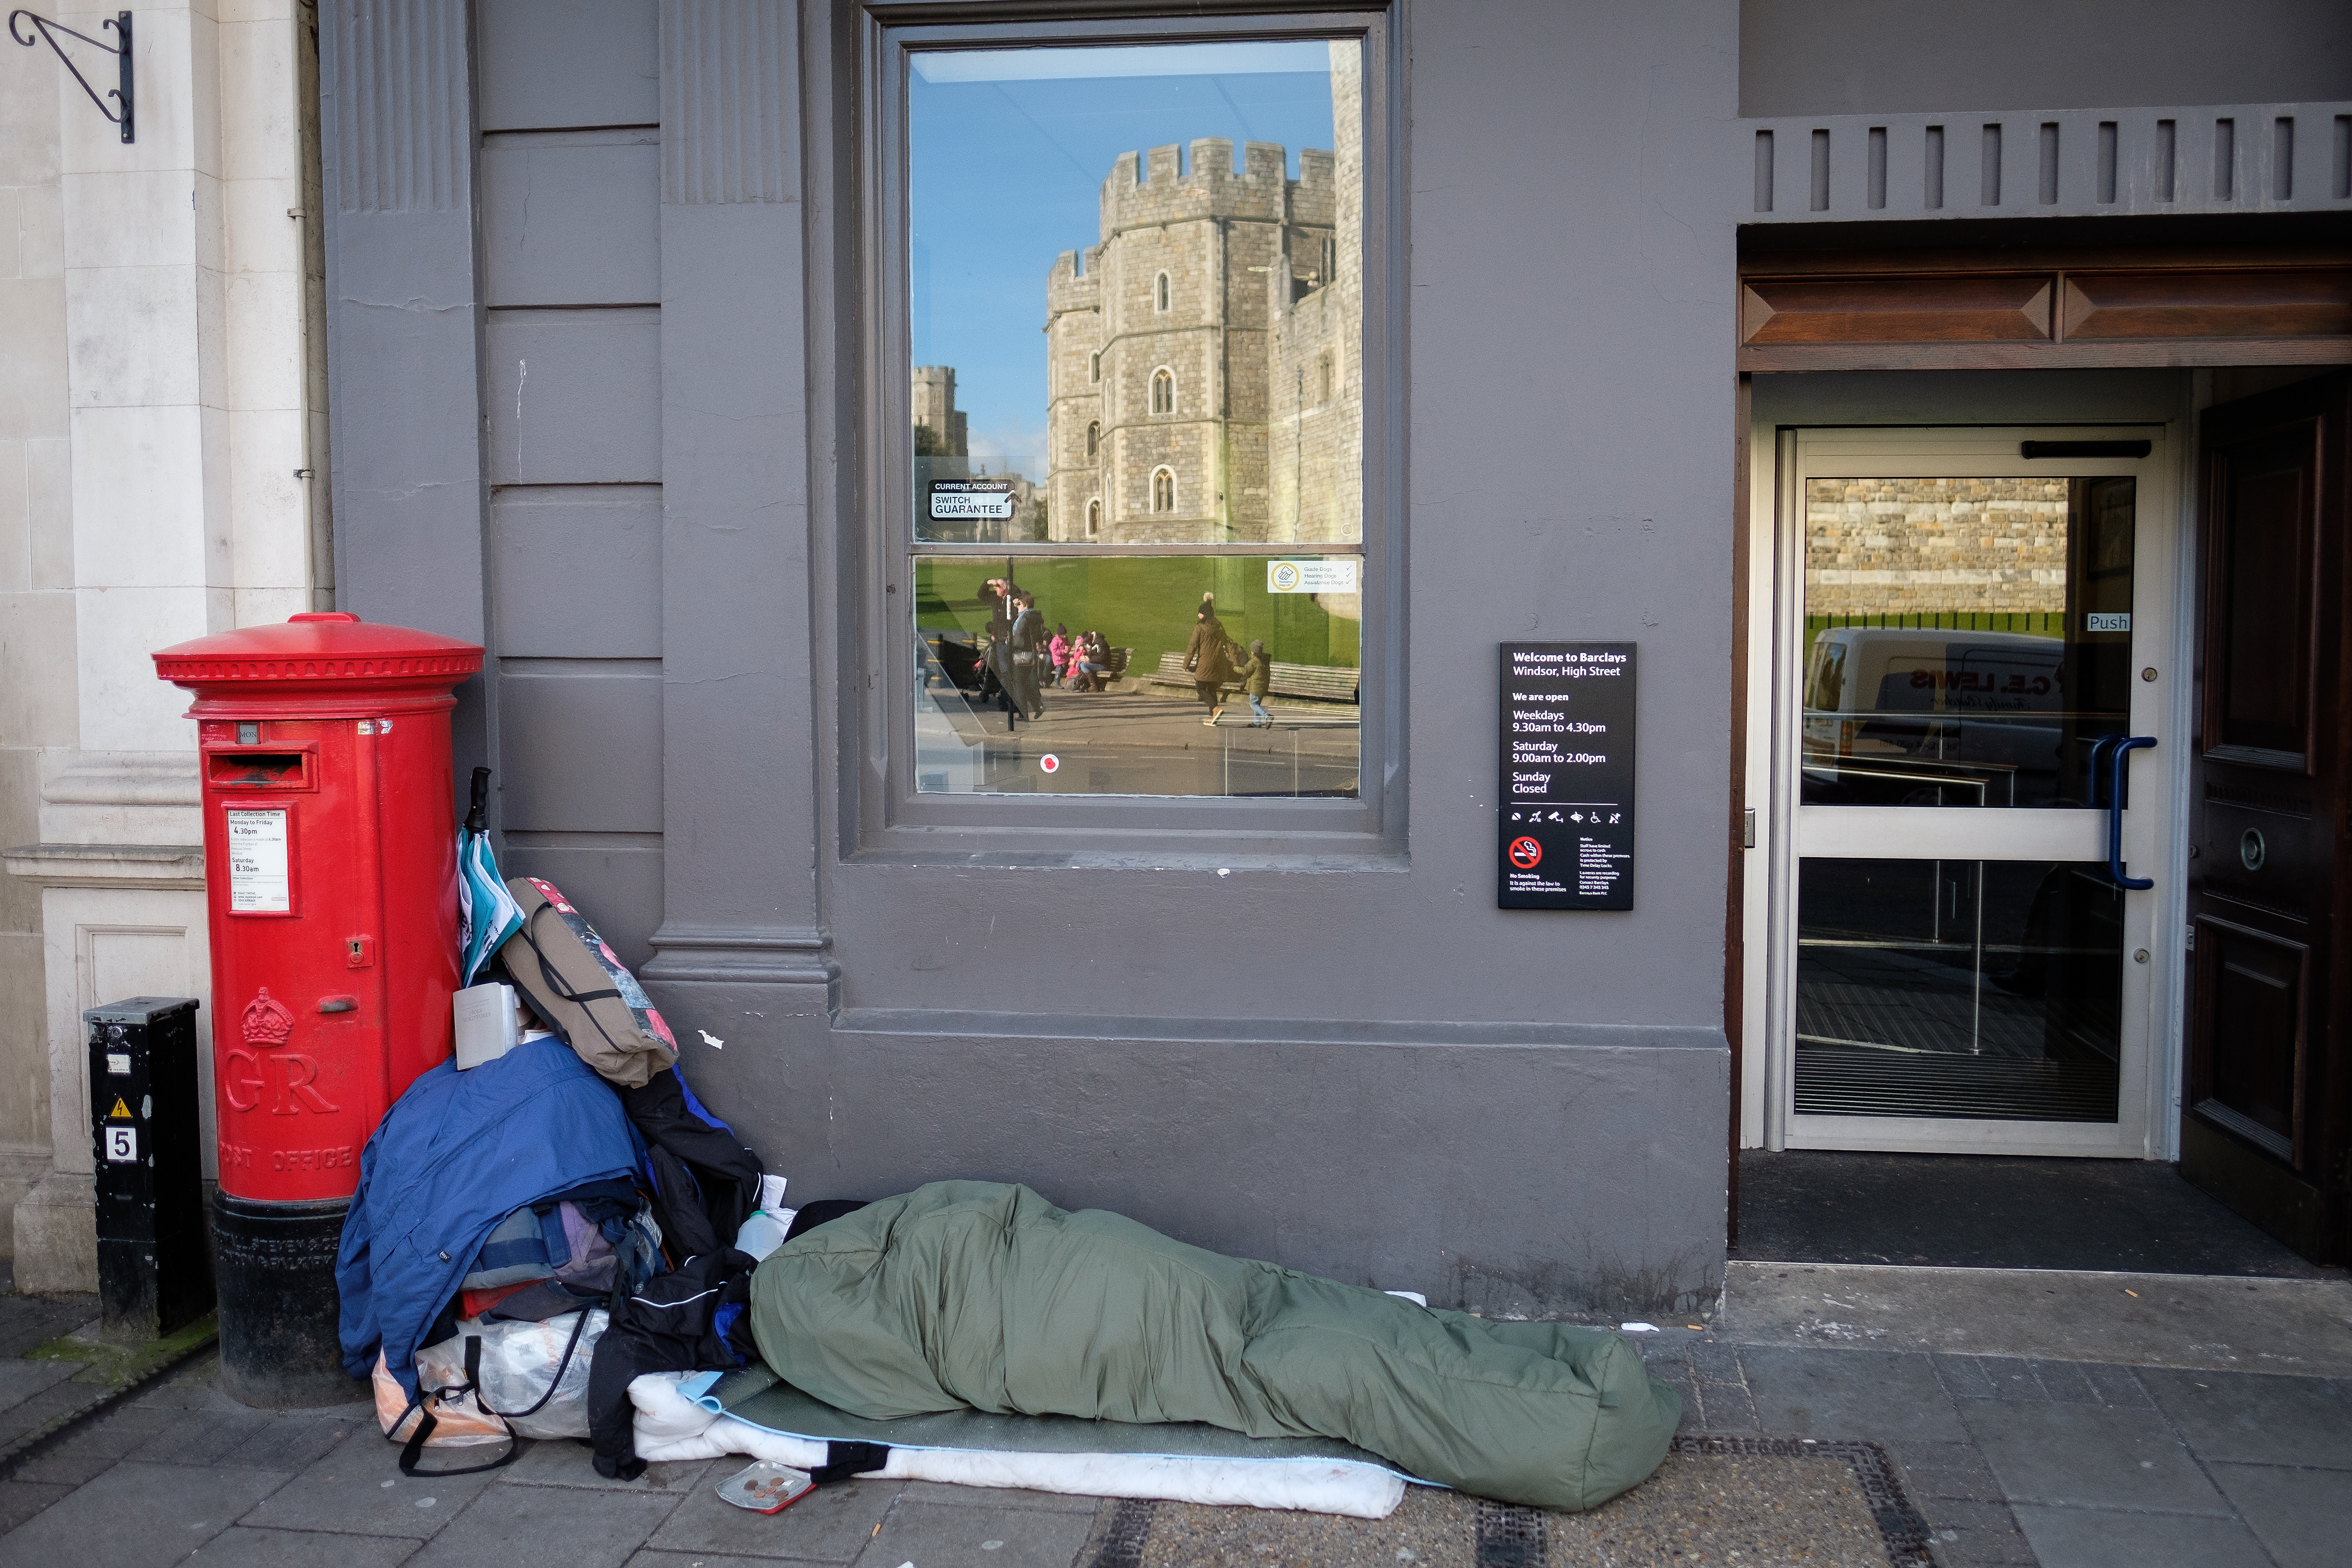 Windsor Castle is seen in the reflection of a bank window as Sunny, a homeless man who has been on the streets of Windsor for around eight months, lays in his sleeping bag on January 5, 2018 in Windsor, England.